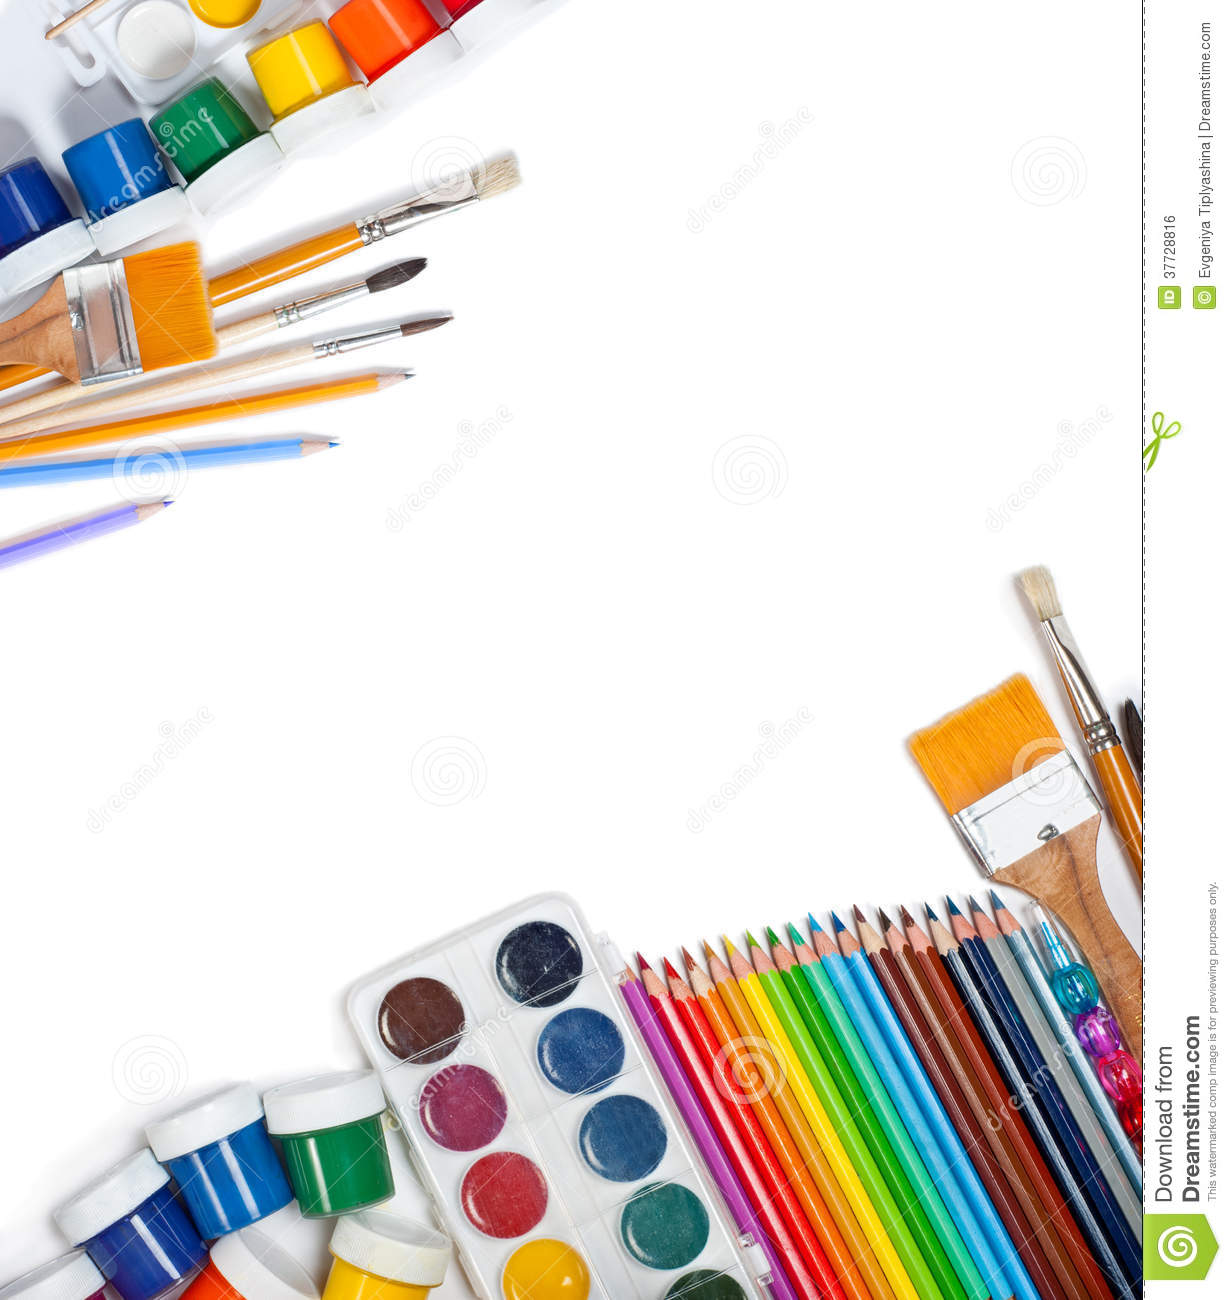 Materials for children 39 s creativity royalty free stock for Materials for kids